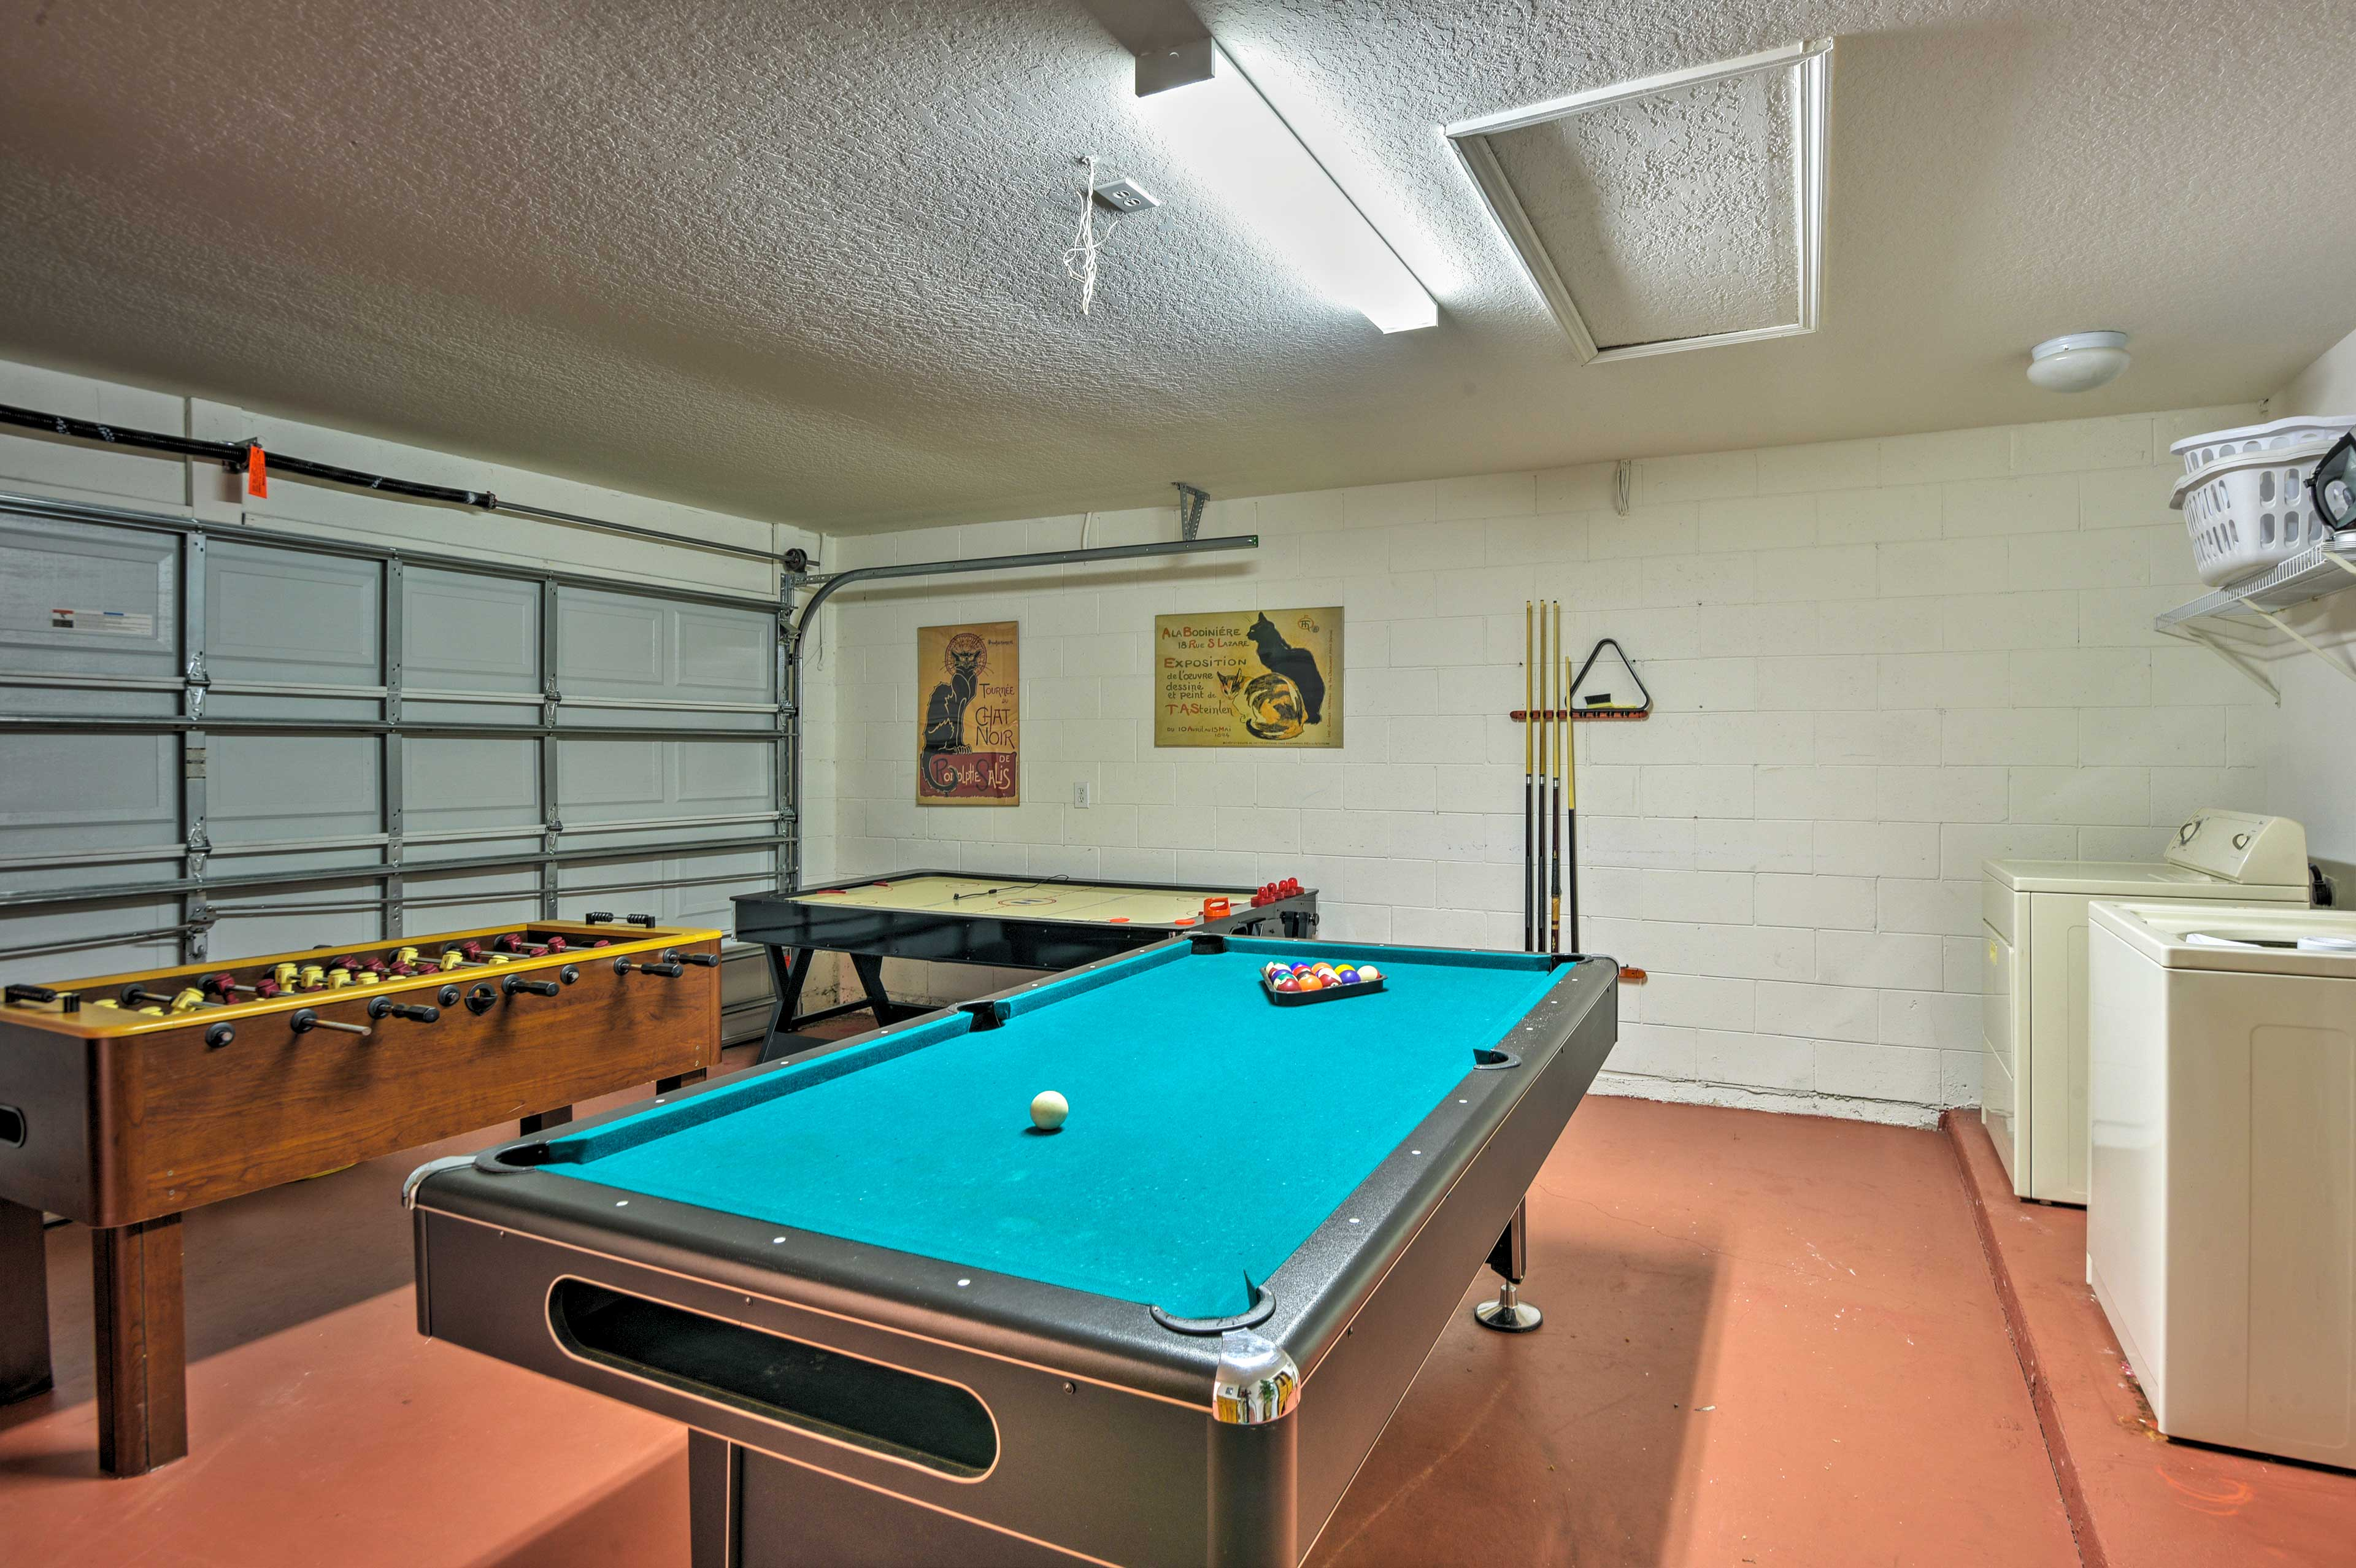 Challenge each other to friendly competitions in the game room.